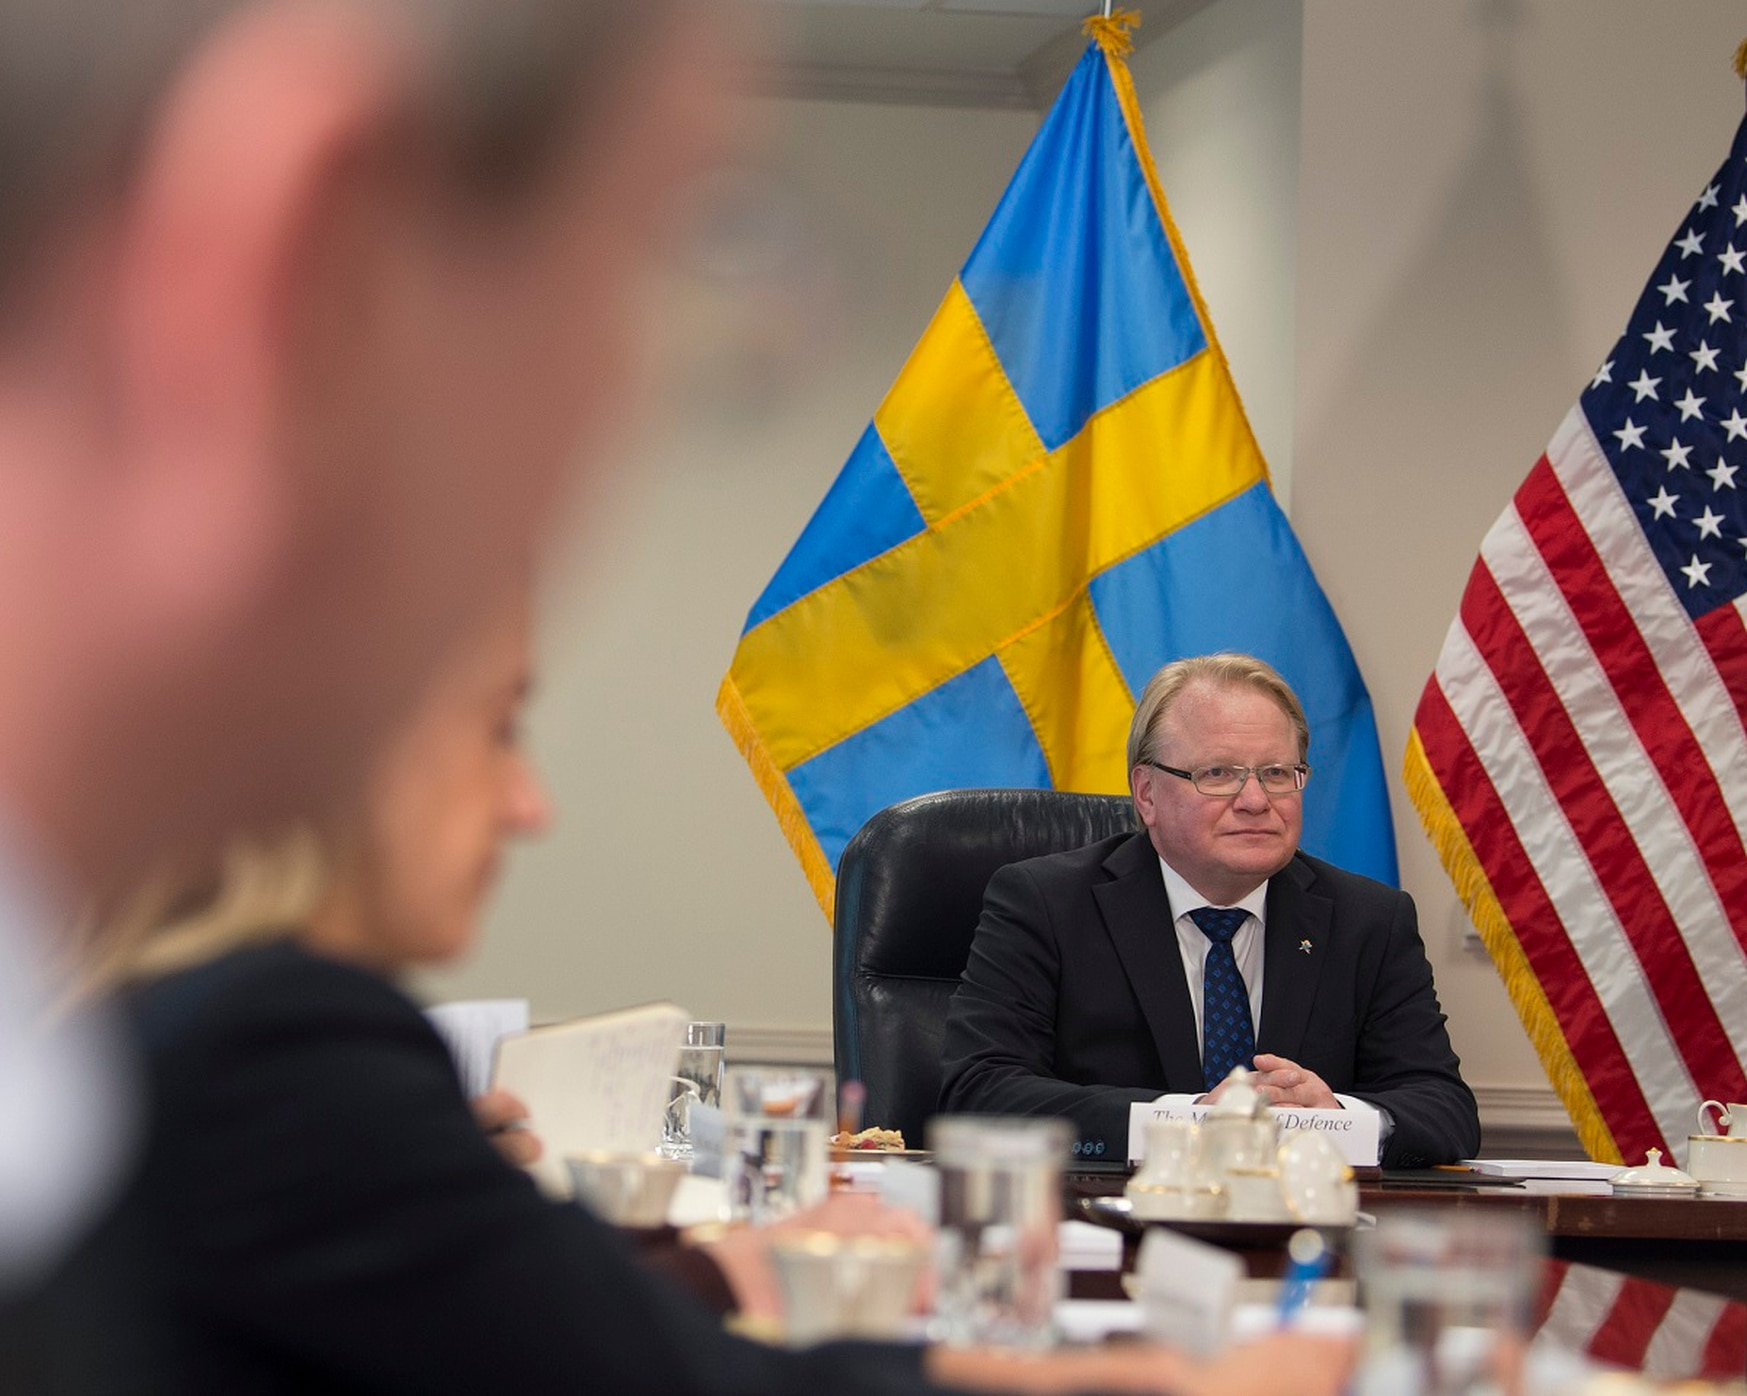 Peter Hultqvist, Sweden's Minister of Defense, has asked Secretary of Defense Mark Esper to keep the U.S. in the Open Skies Treaty. (DoD/Kathryn E. Holm)